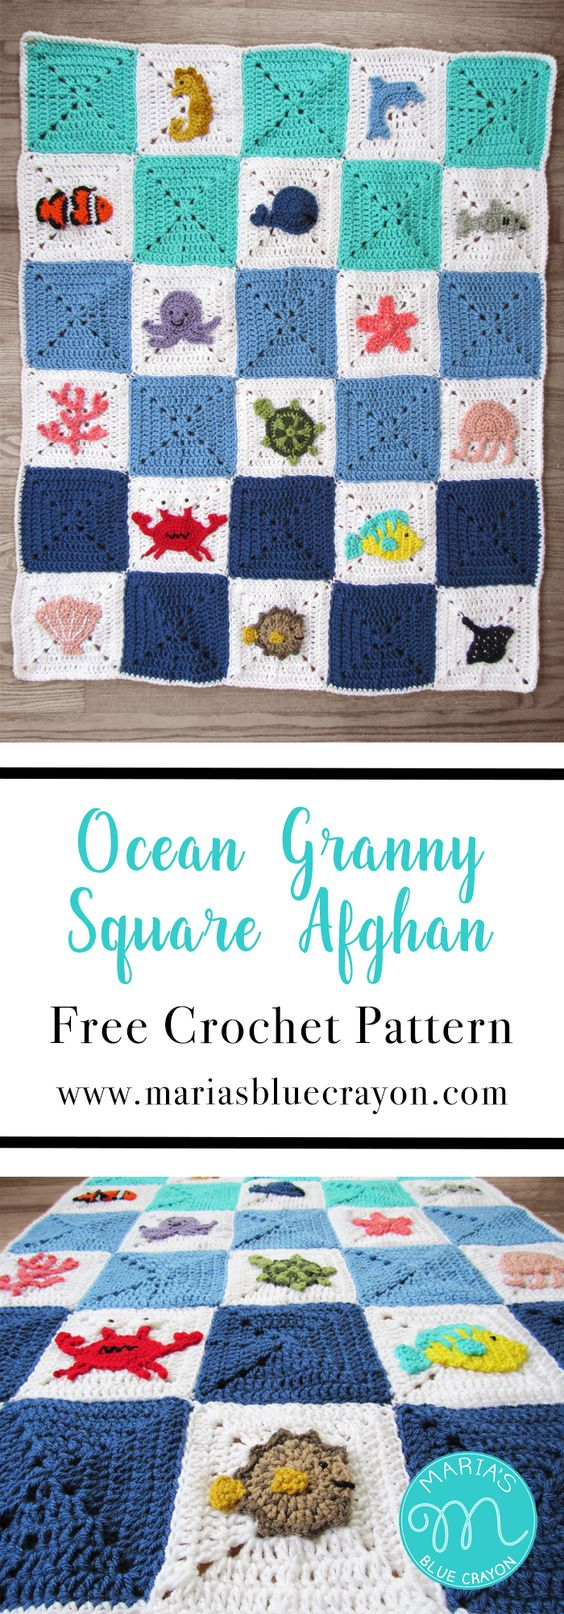 Ocean Granny Square Afghan Free Crochet Pattern.